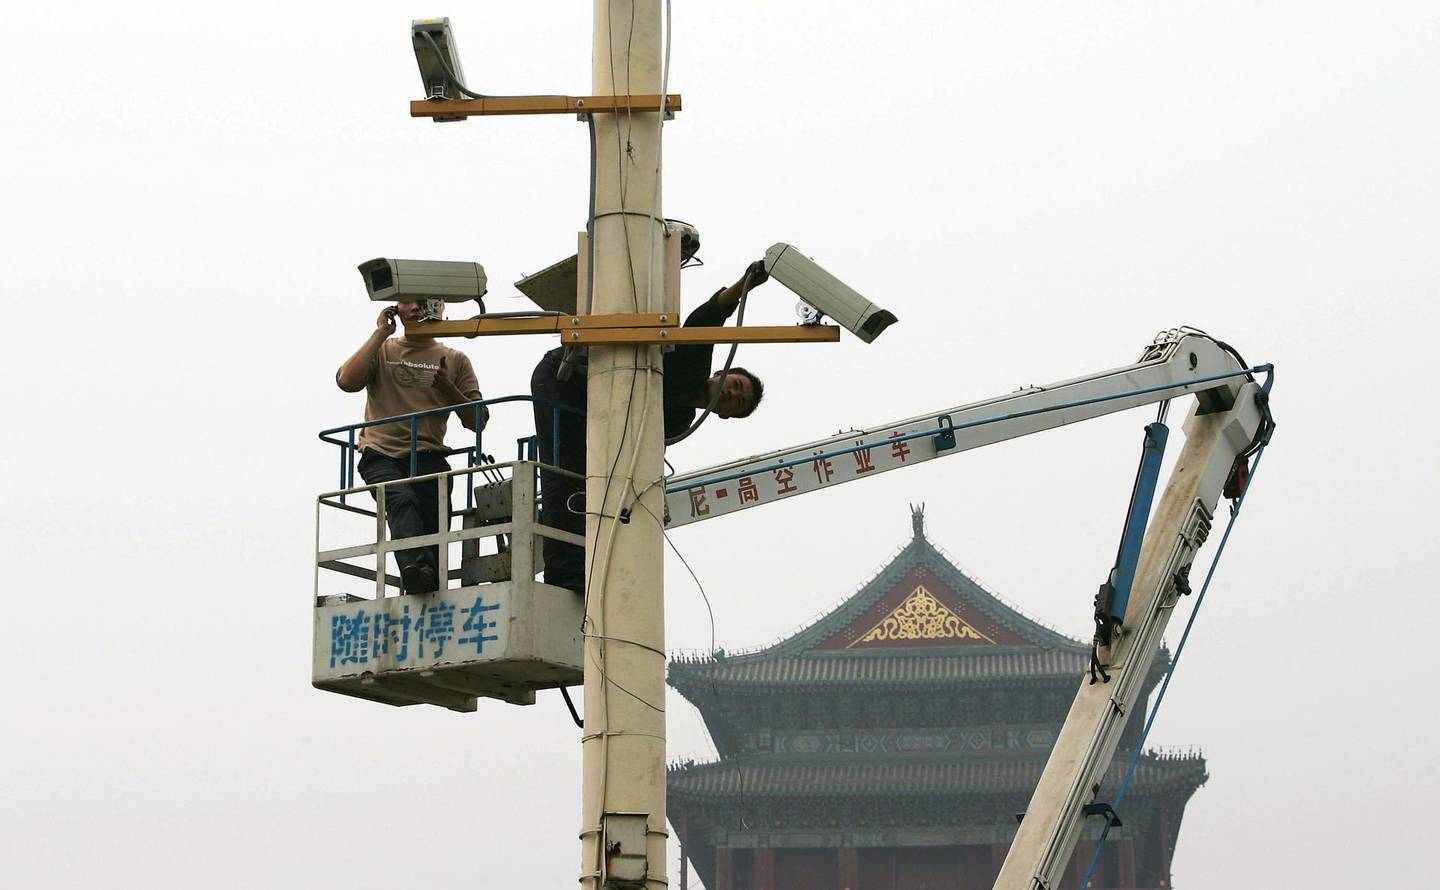 BEIJING - SEPTEMBER 28: Labourers adjust newly installed surveillance cameras at Tiananmen Square ahead of National Day on September 28, 2005 in Beijing, China. The capital city has tightened security as China prepares for its celebrations of the 56th anniversary of the founding of People's Republic of China on October 1.  (Photo by Guang Niu/Getty Images)